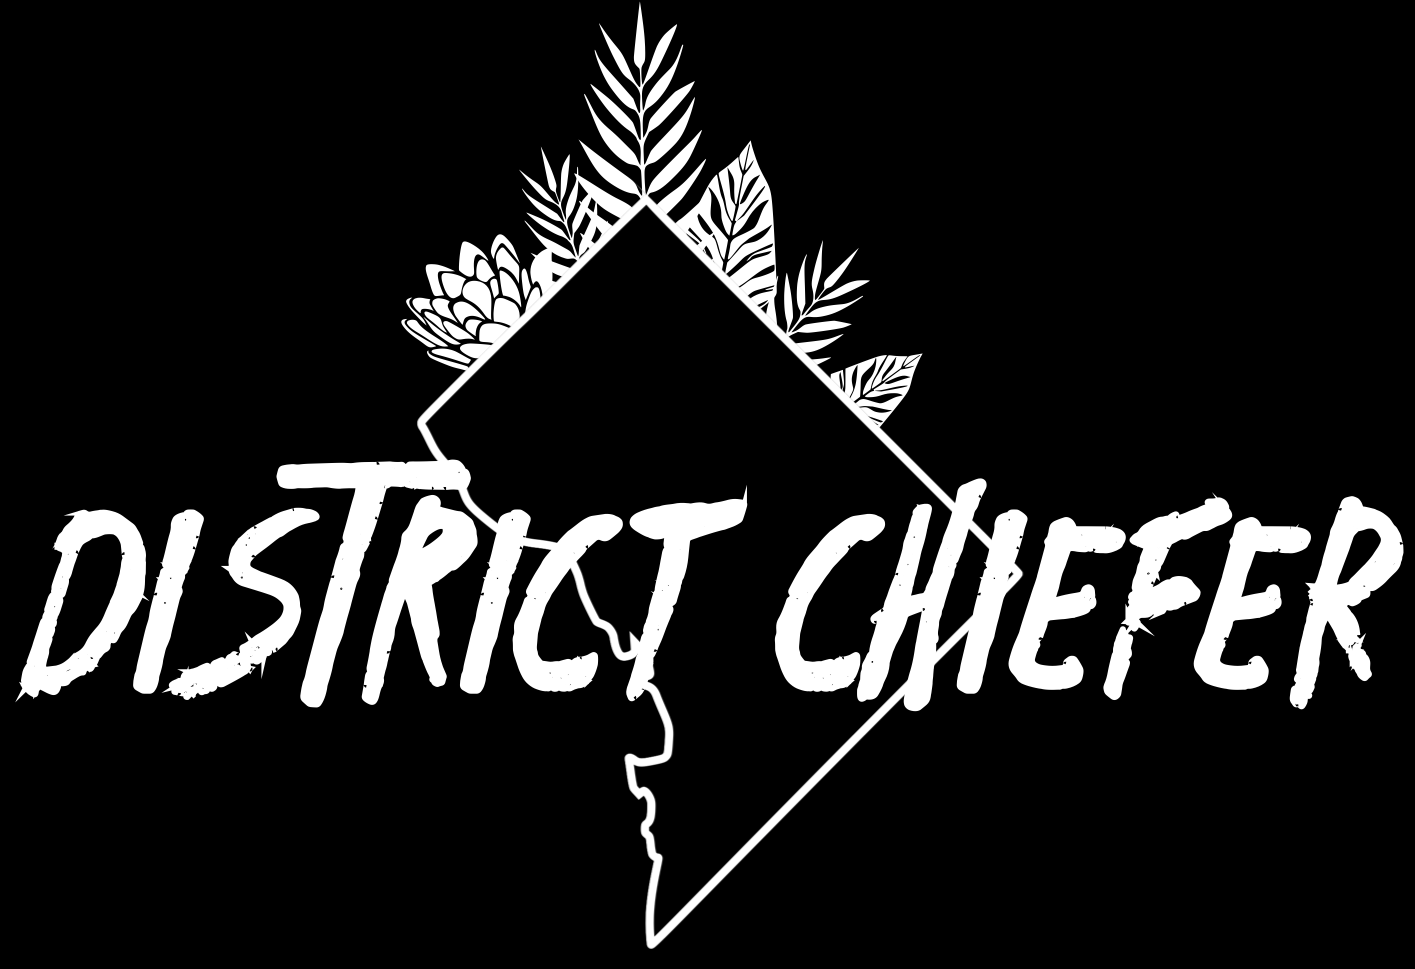 District Chiefer